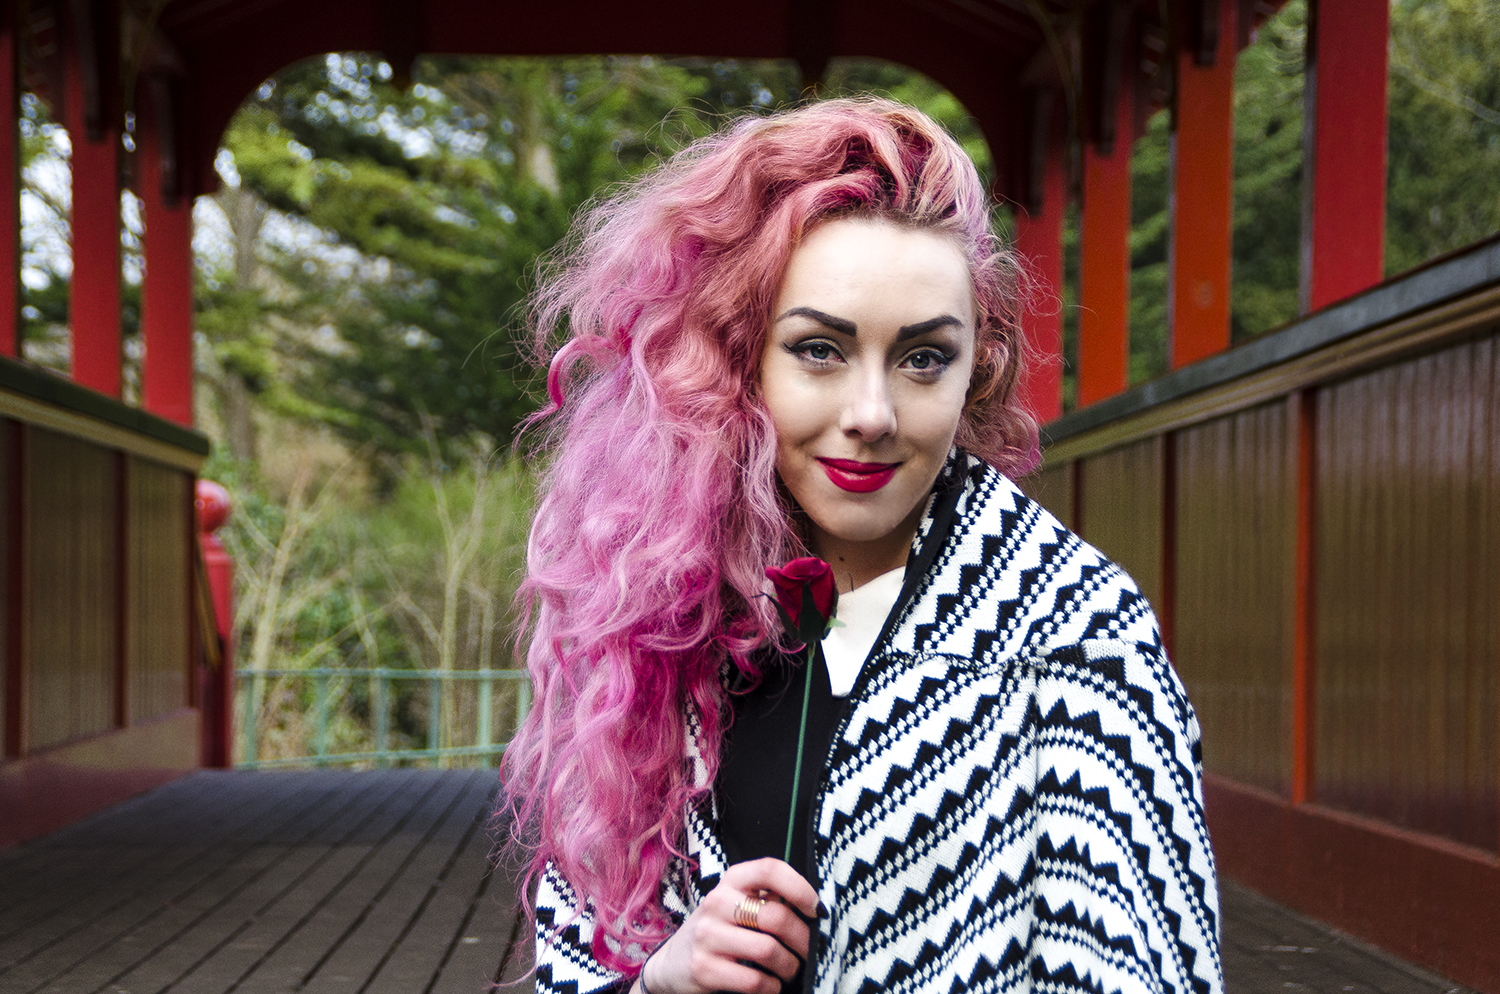 Stephi LaReine, pink haired fashion and lifestyle blogger